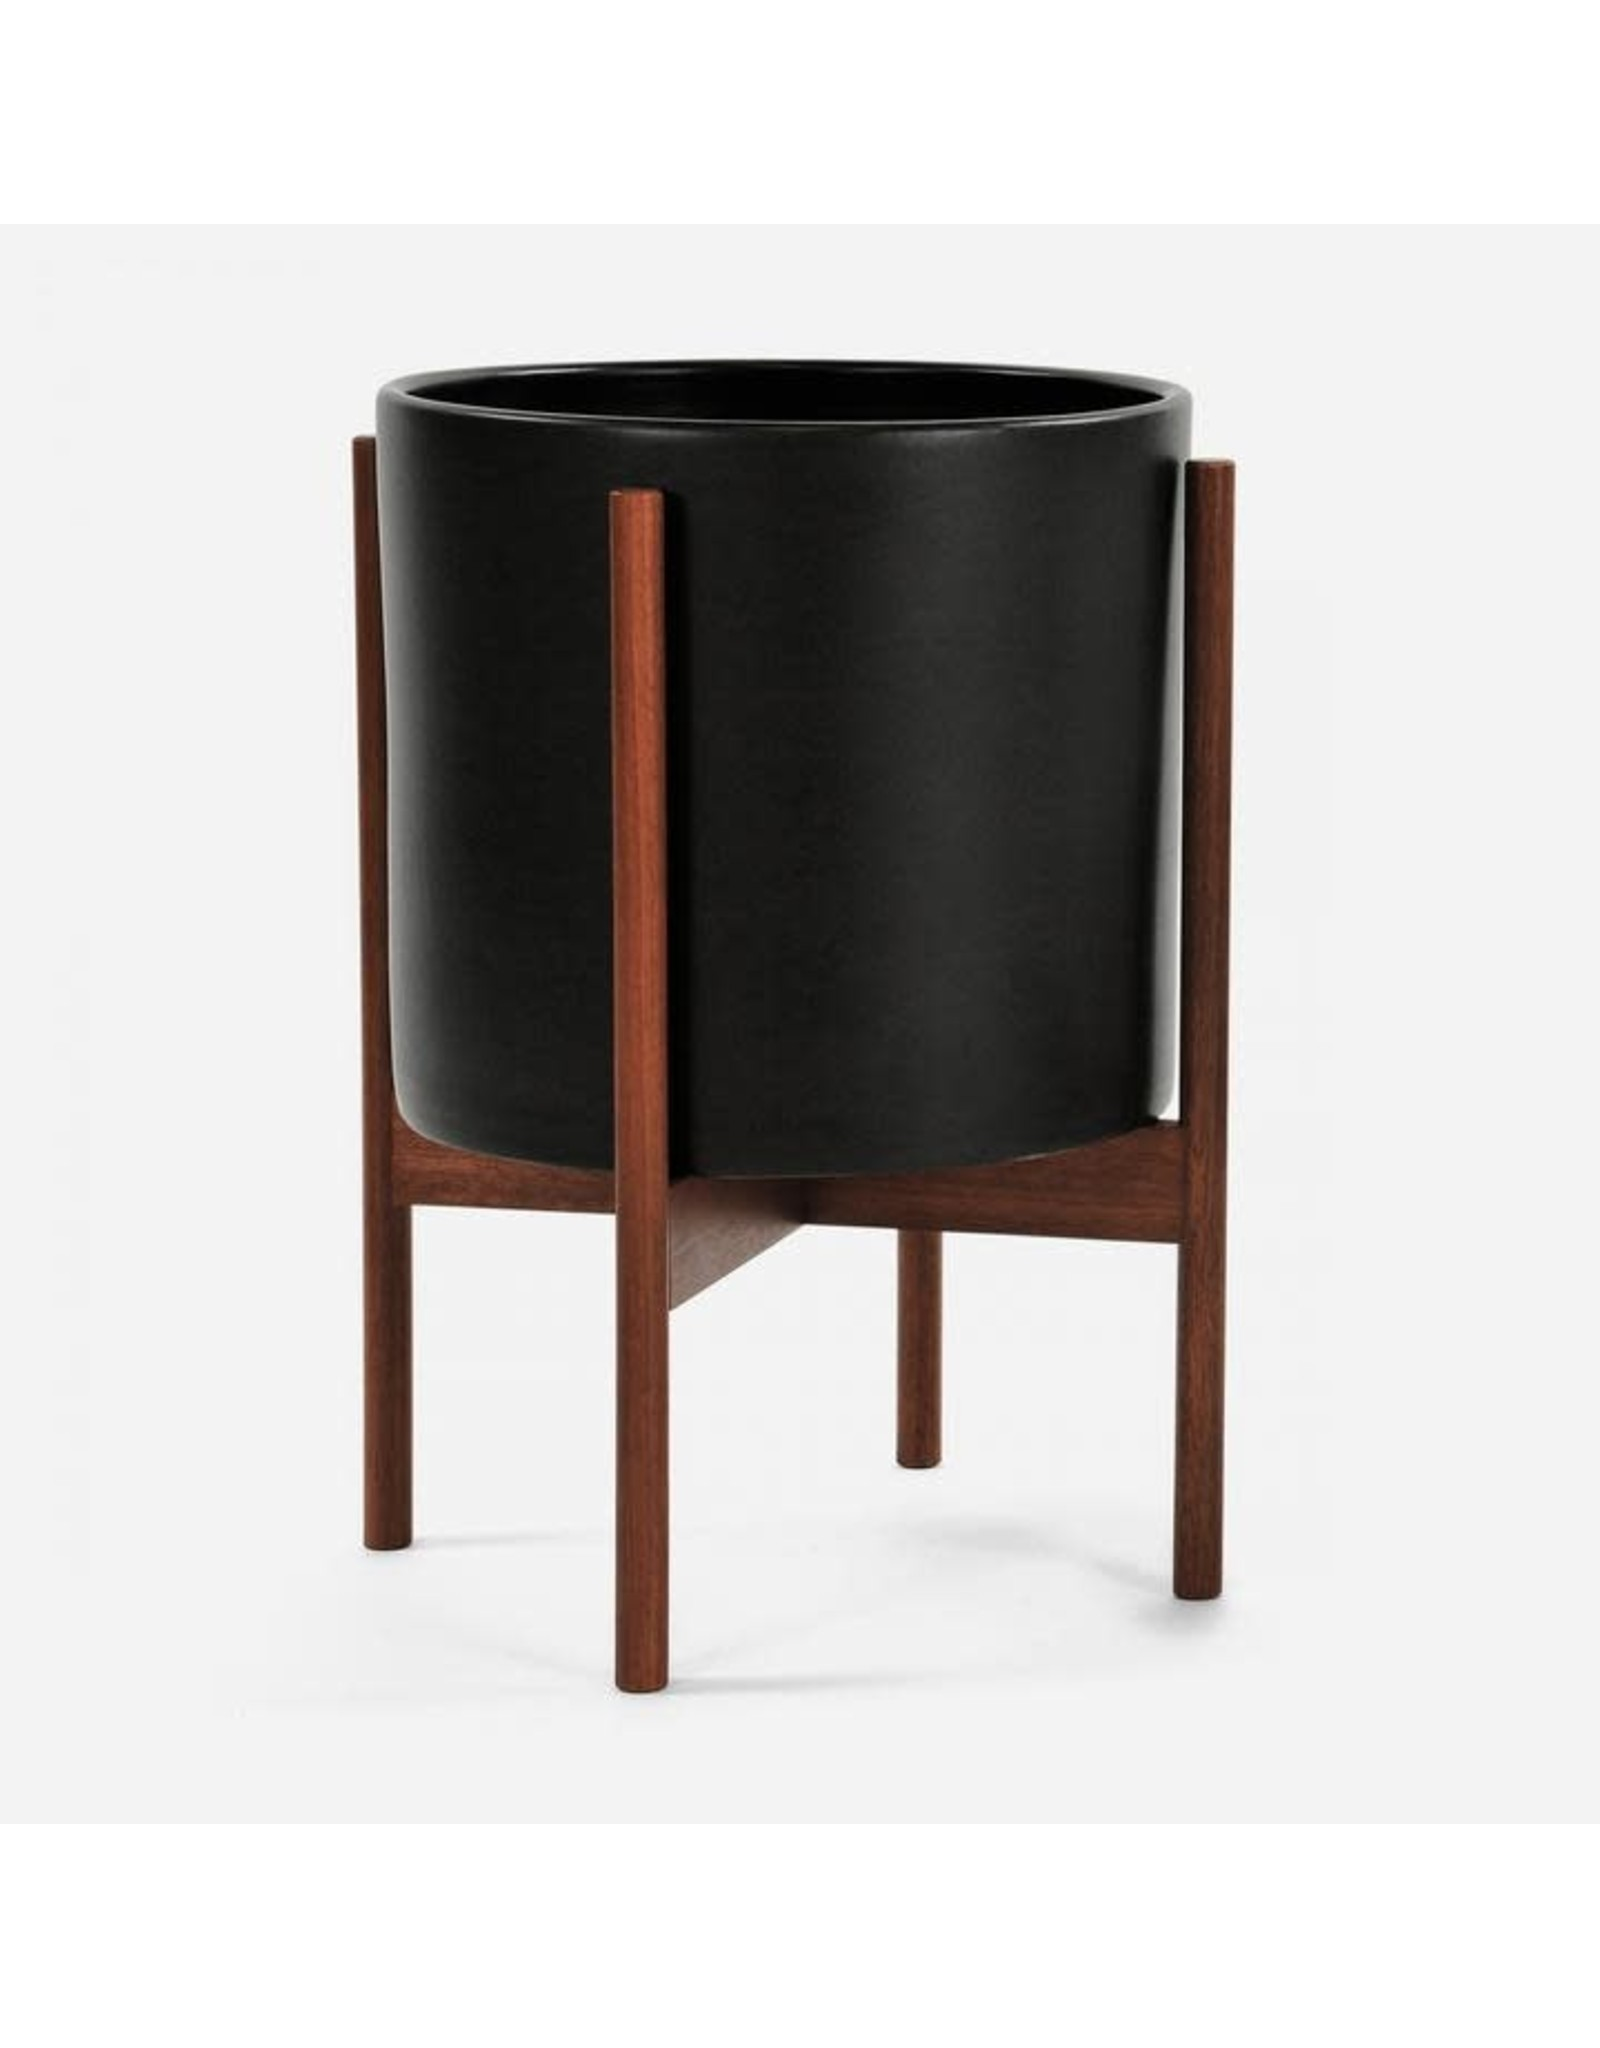 Modernica Charcoal Cylinder with Wood Stand